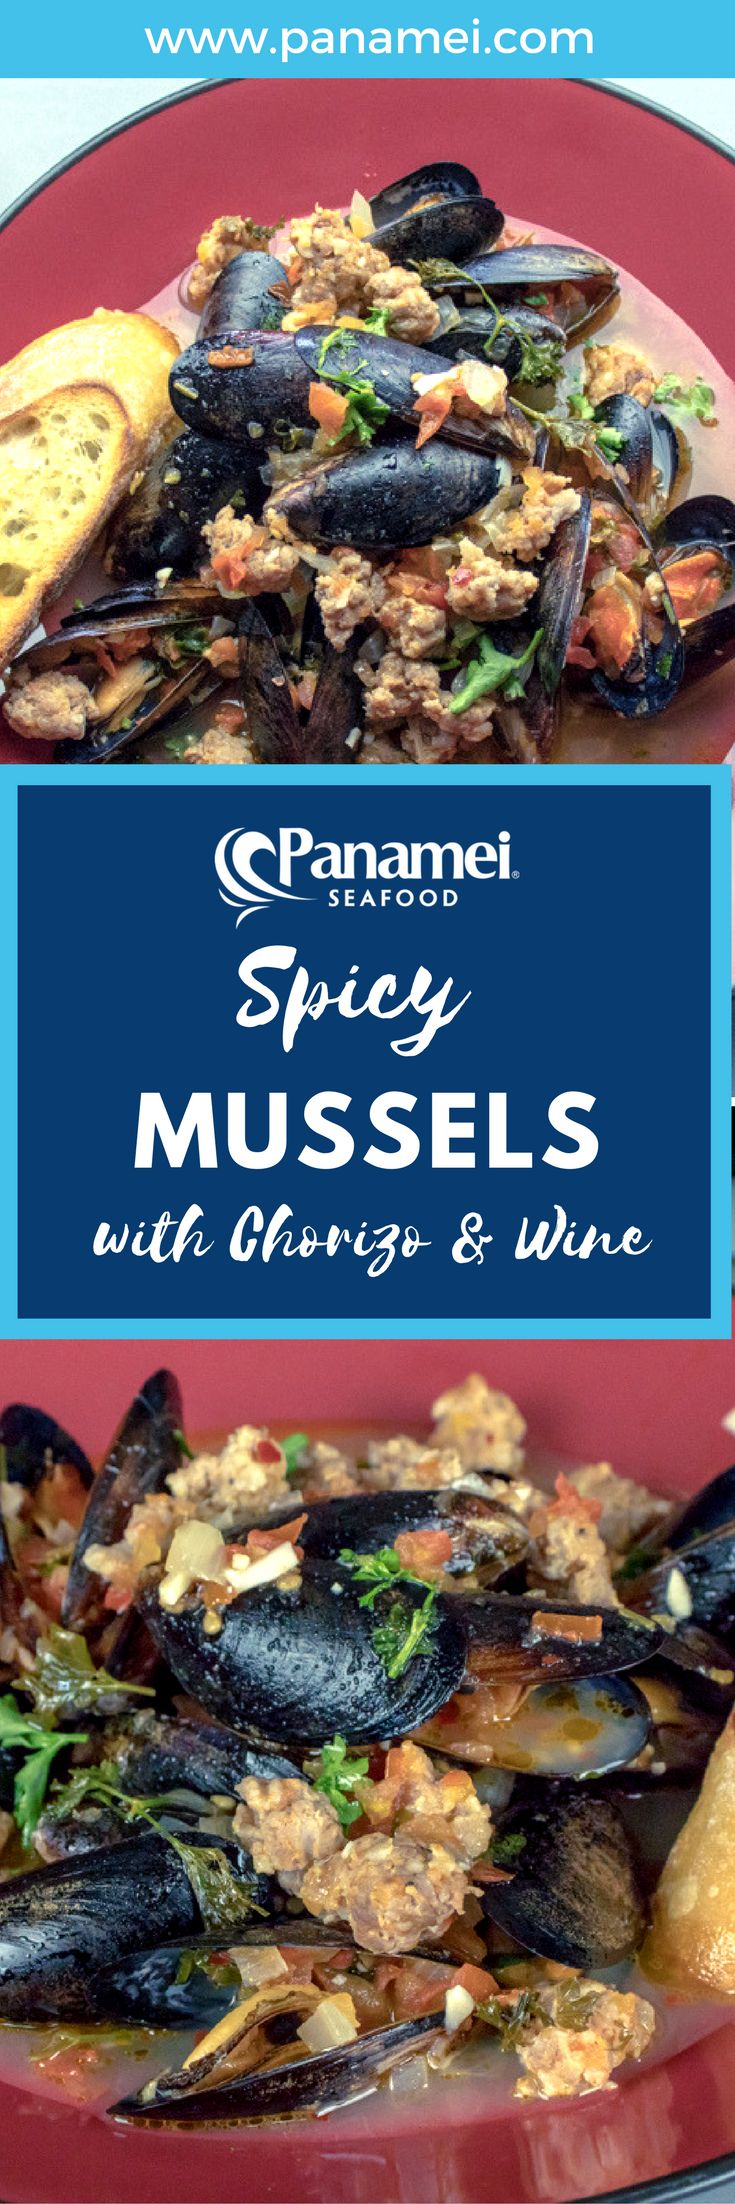 There are many ways to cook mussels, and if you like spicy foods, this recipe is for you!